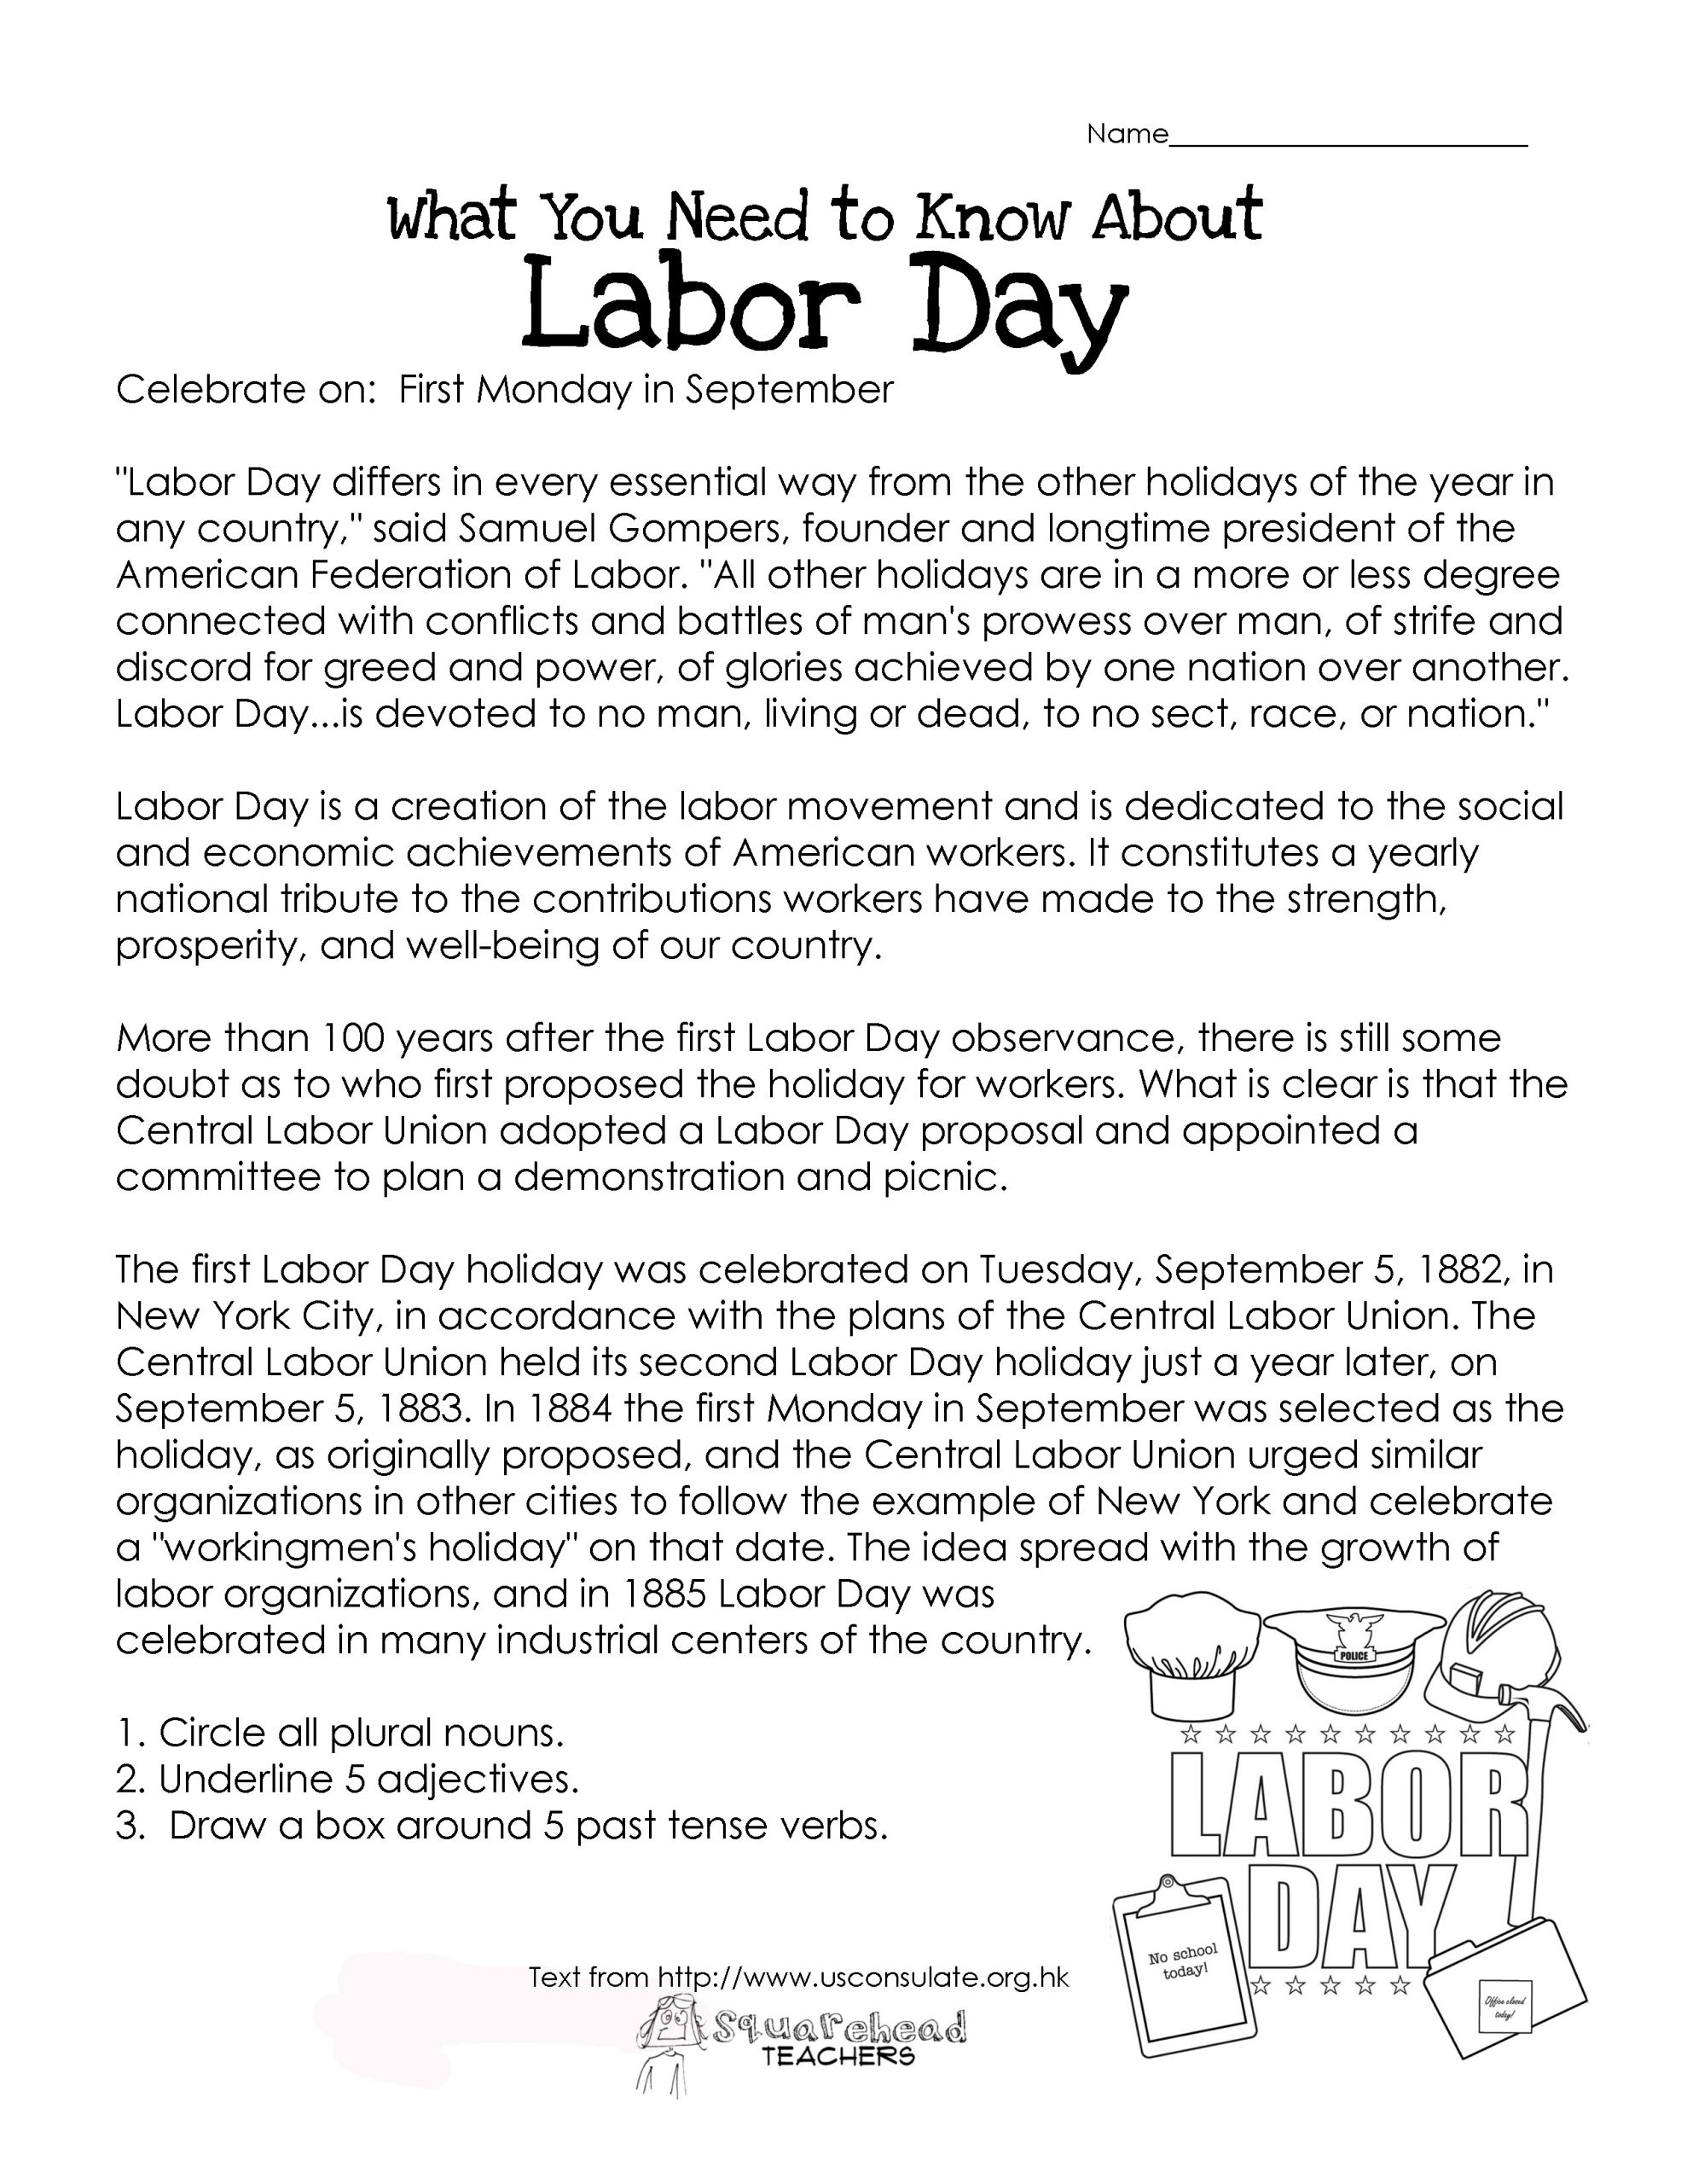 Memorial Day Worksheets Free Printable Labor Day What You Need to Know Free Worksheet